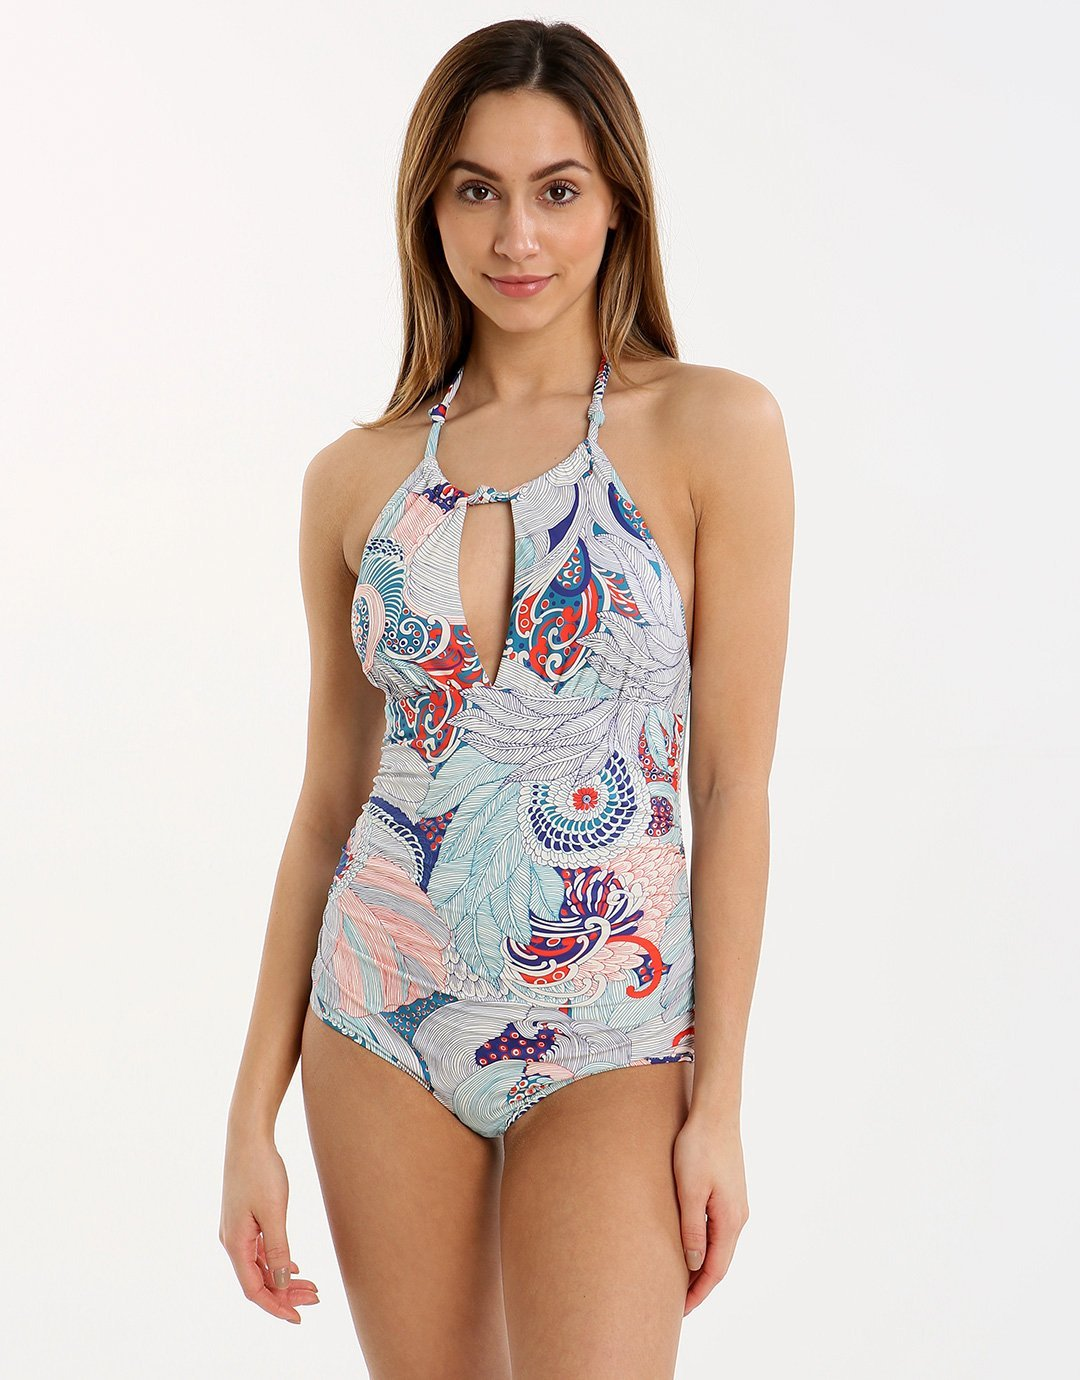 Huit Overjoyed Swimsuit - Malibu Blue